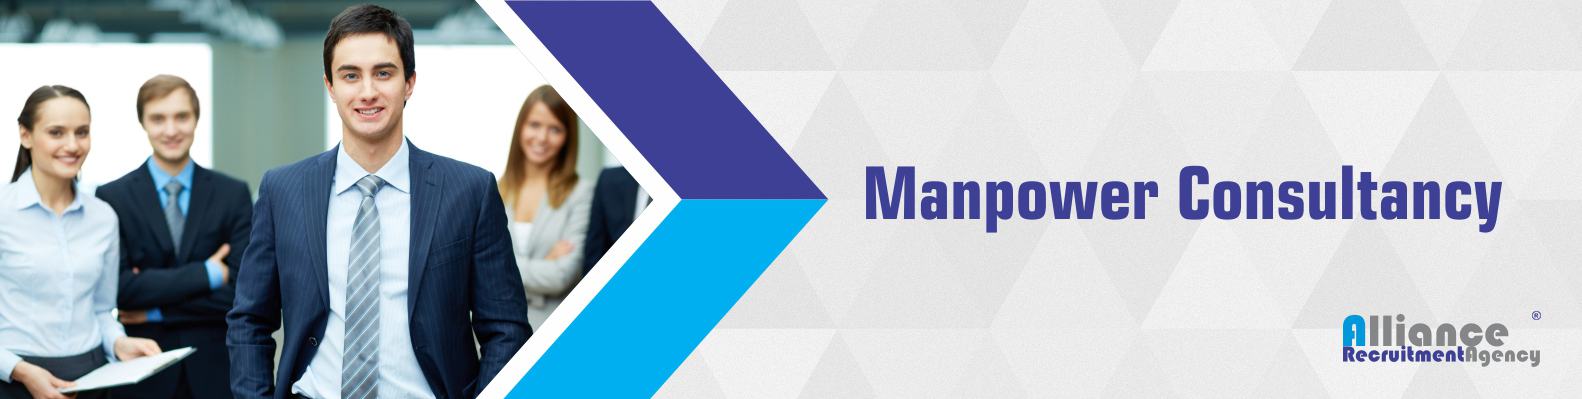 Manpower Consultancy - Best Manpower Recruitment Consultants in India